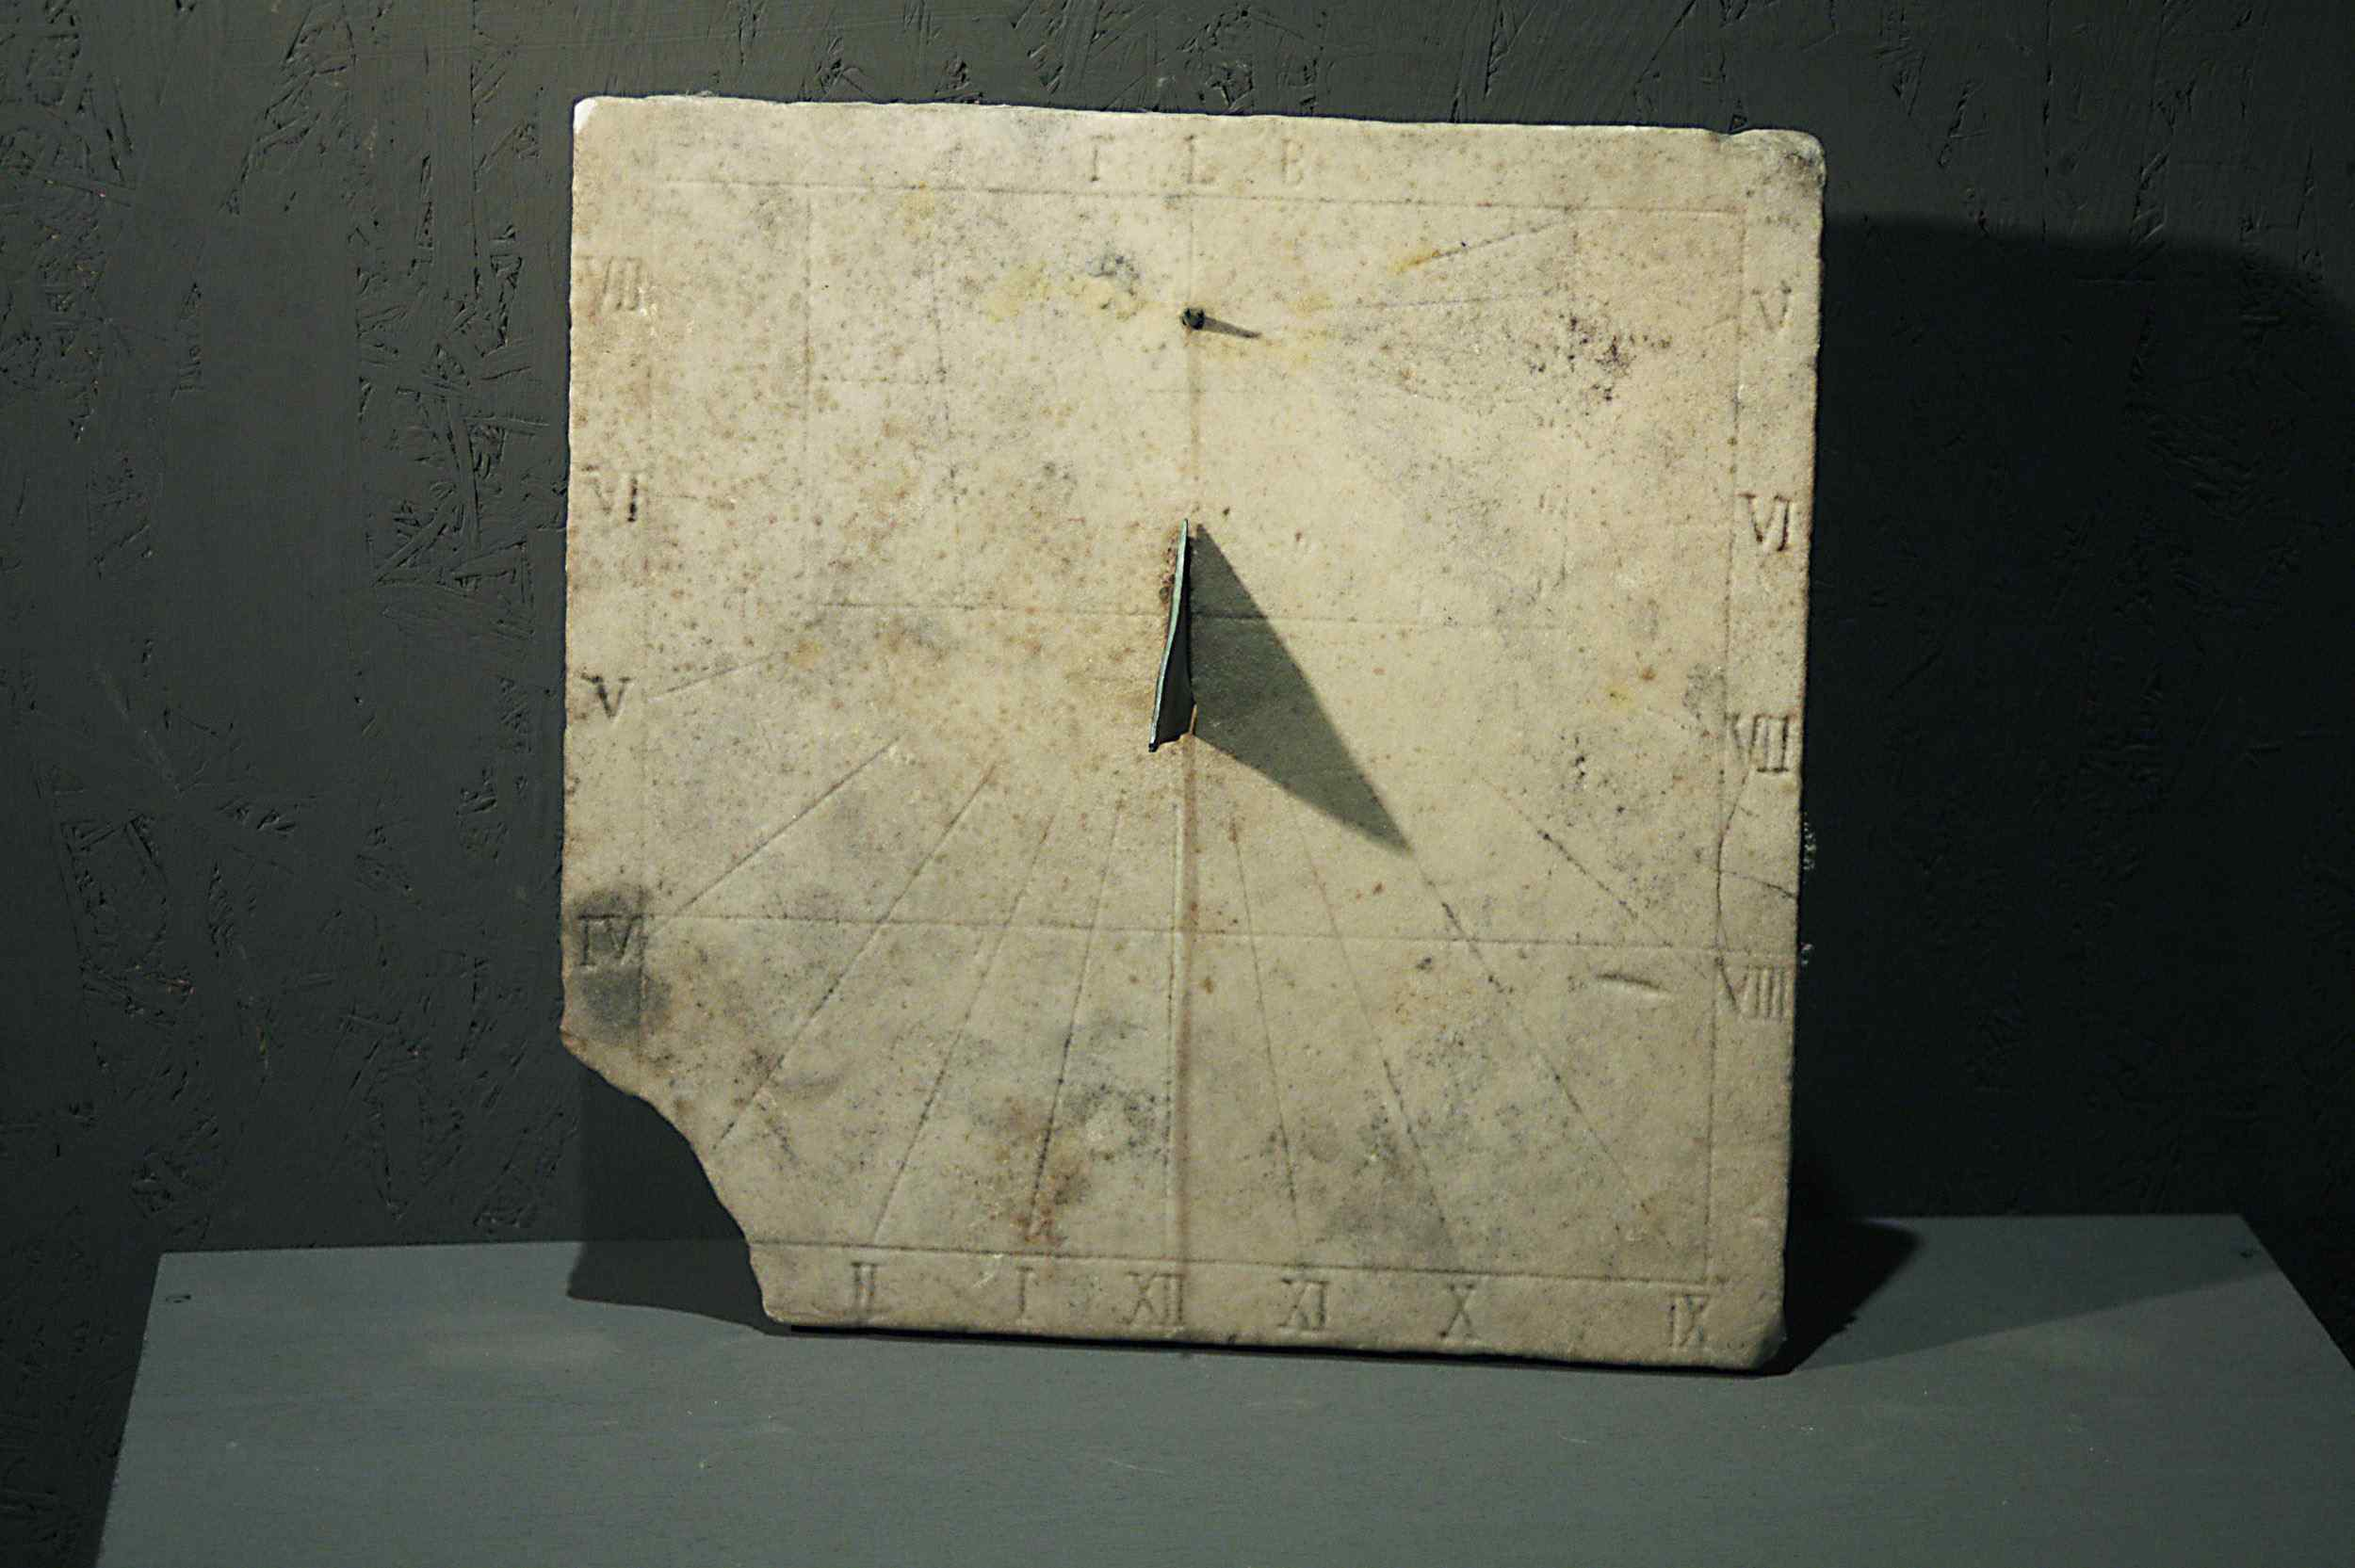 Marble Sundial, Central Italy, 1600